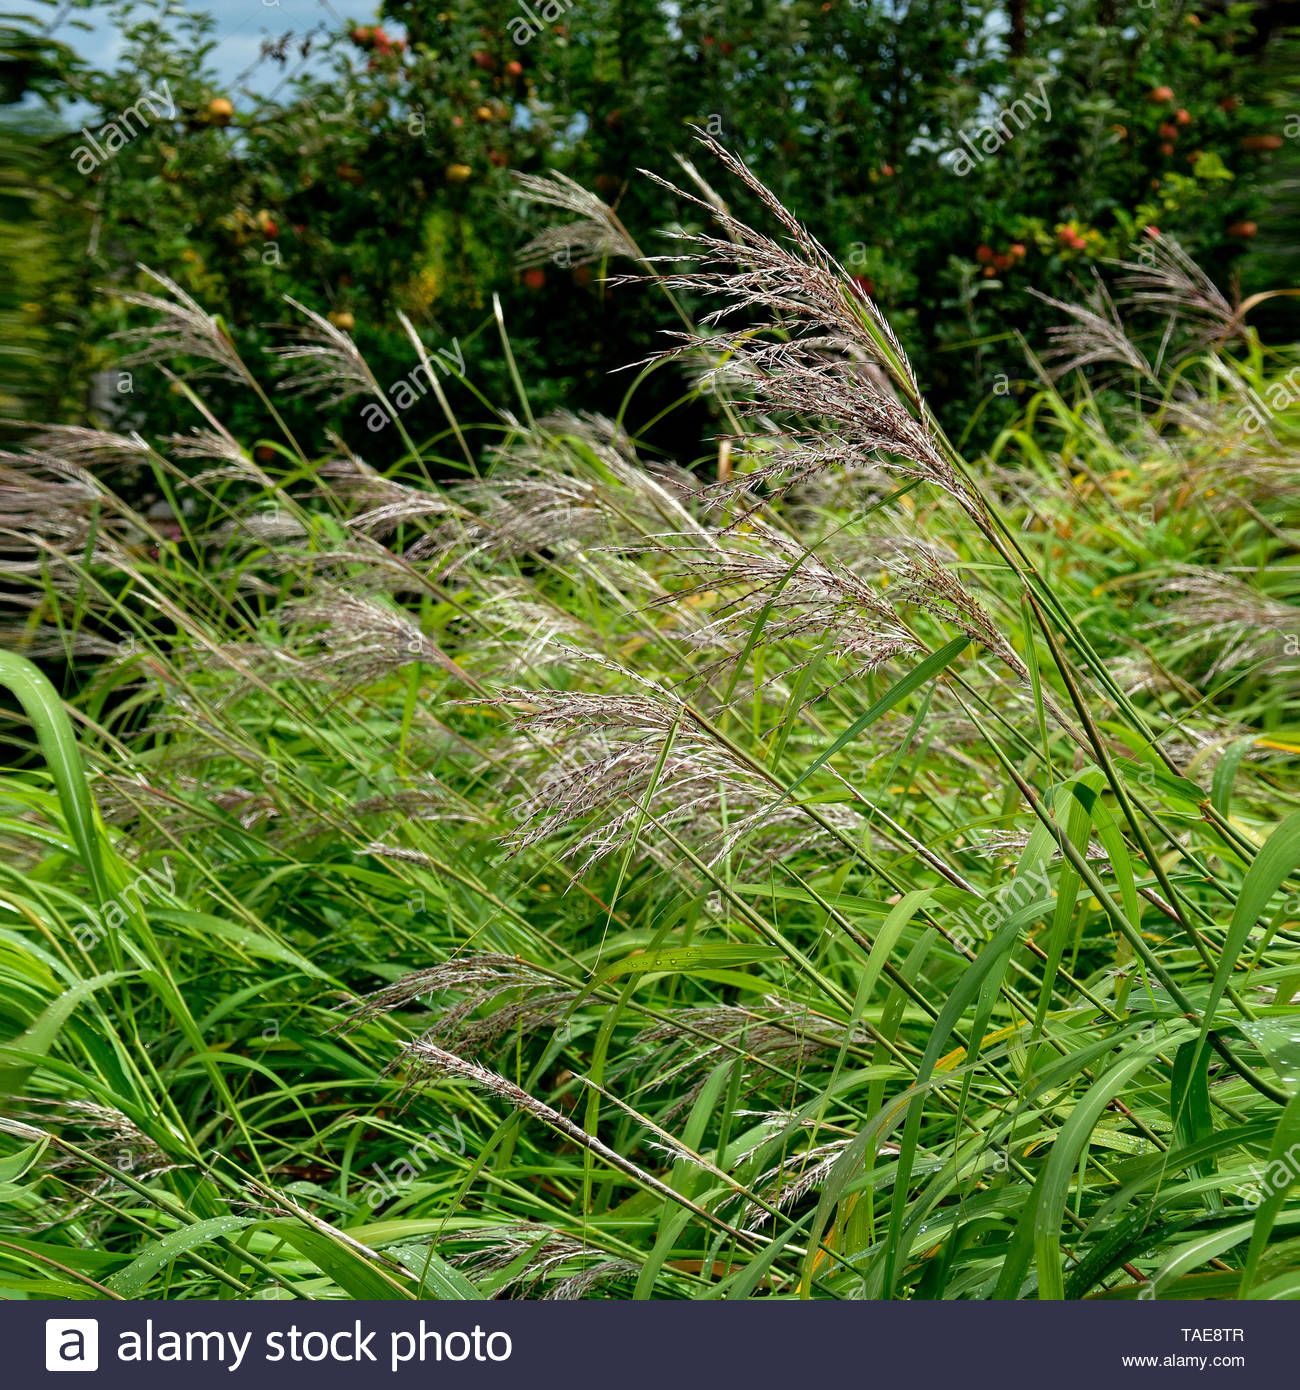 Miscanthus (Miscanthus sinensis) on the grass of the garden, variety 'Silberfeder', Suzanne's vegetable garden, Le Pas, Mayenne, Pays de la Loire, France - Stock Image